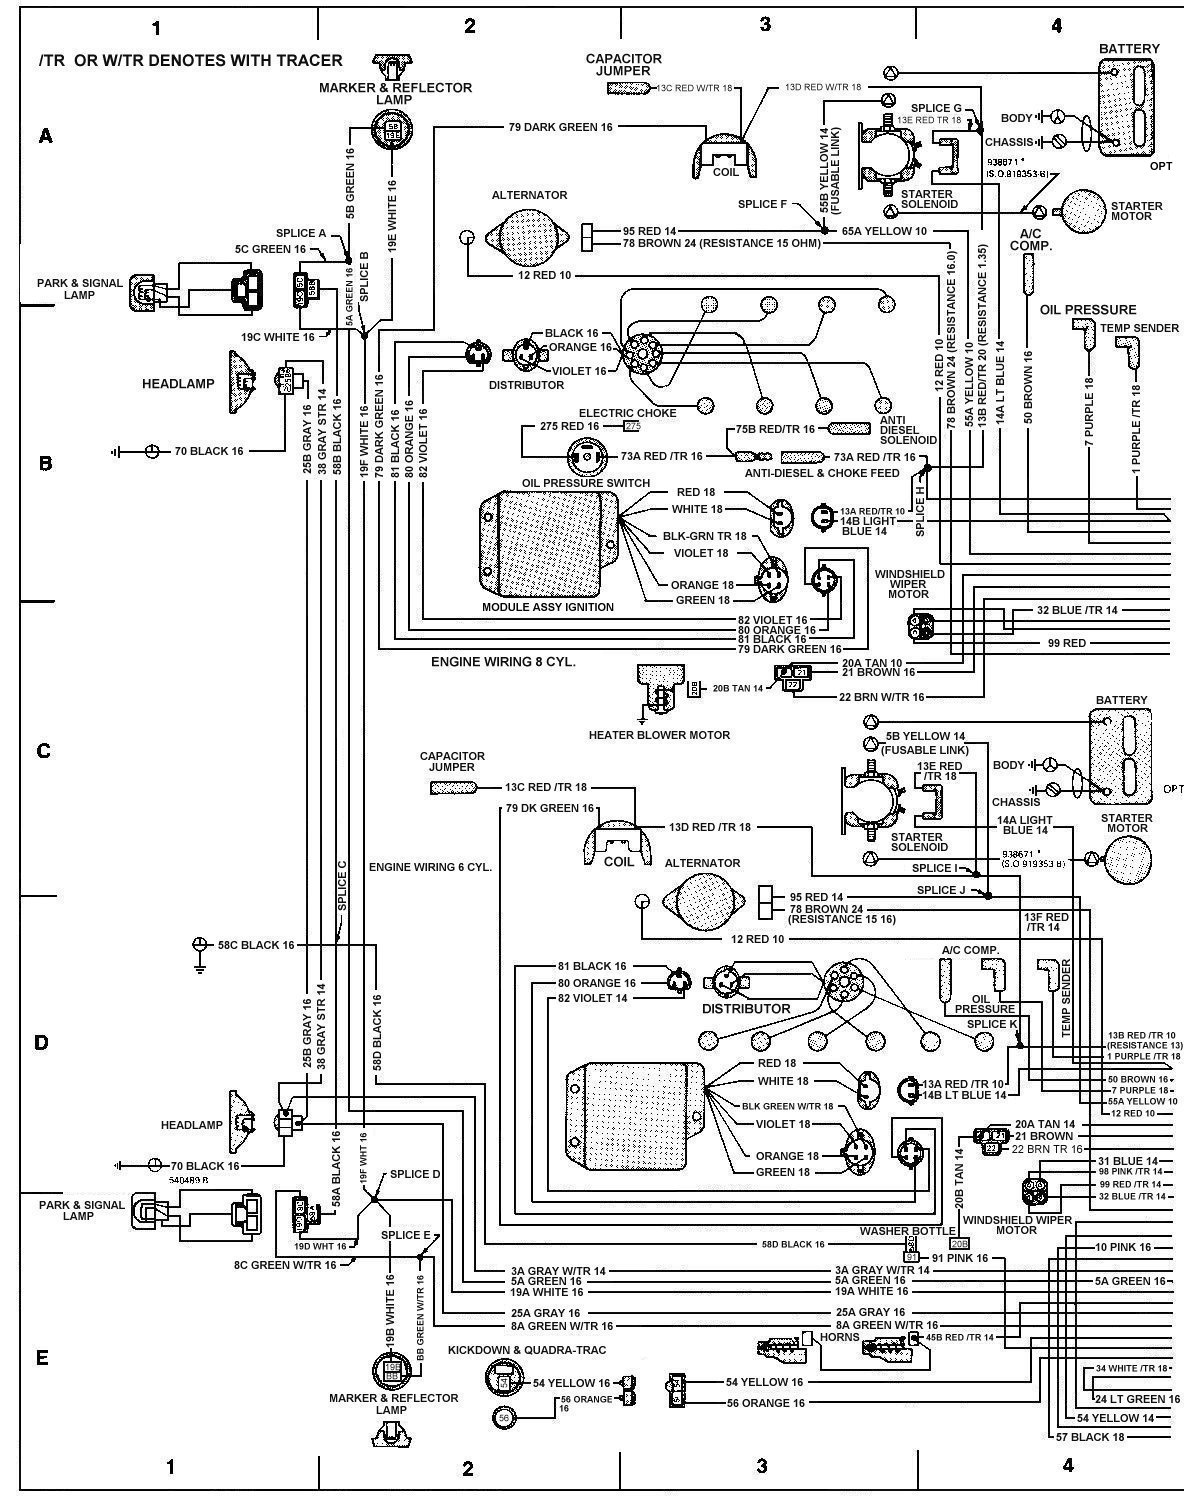 hight resolution of 79 jeep cj5 wiring automotive wiring diagrams 1983 jeep cj7 wiring diagram 79 jeep cj5